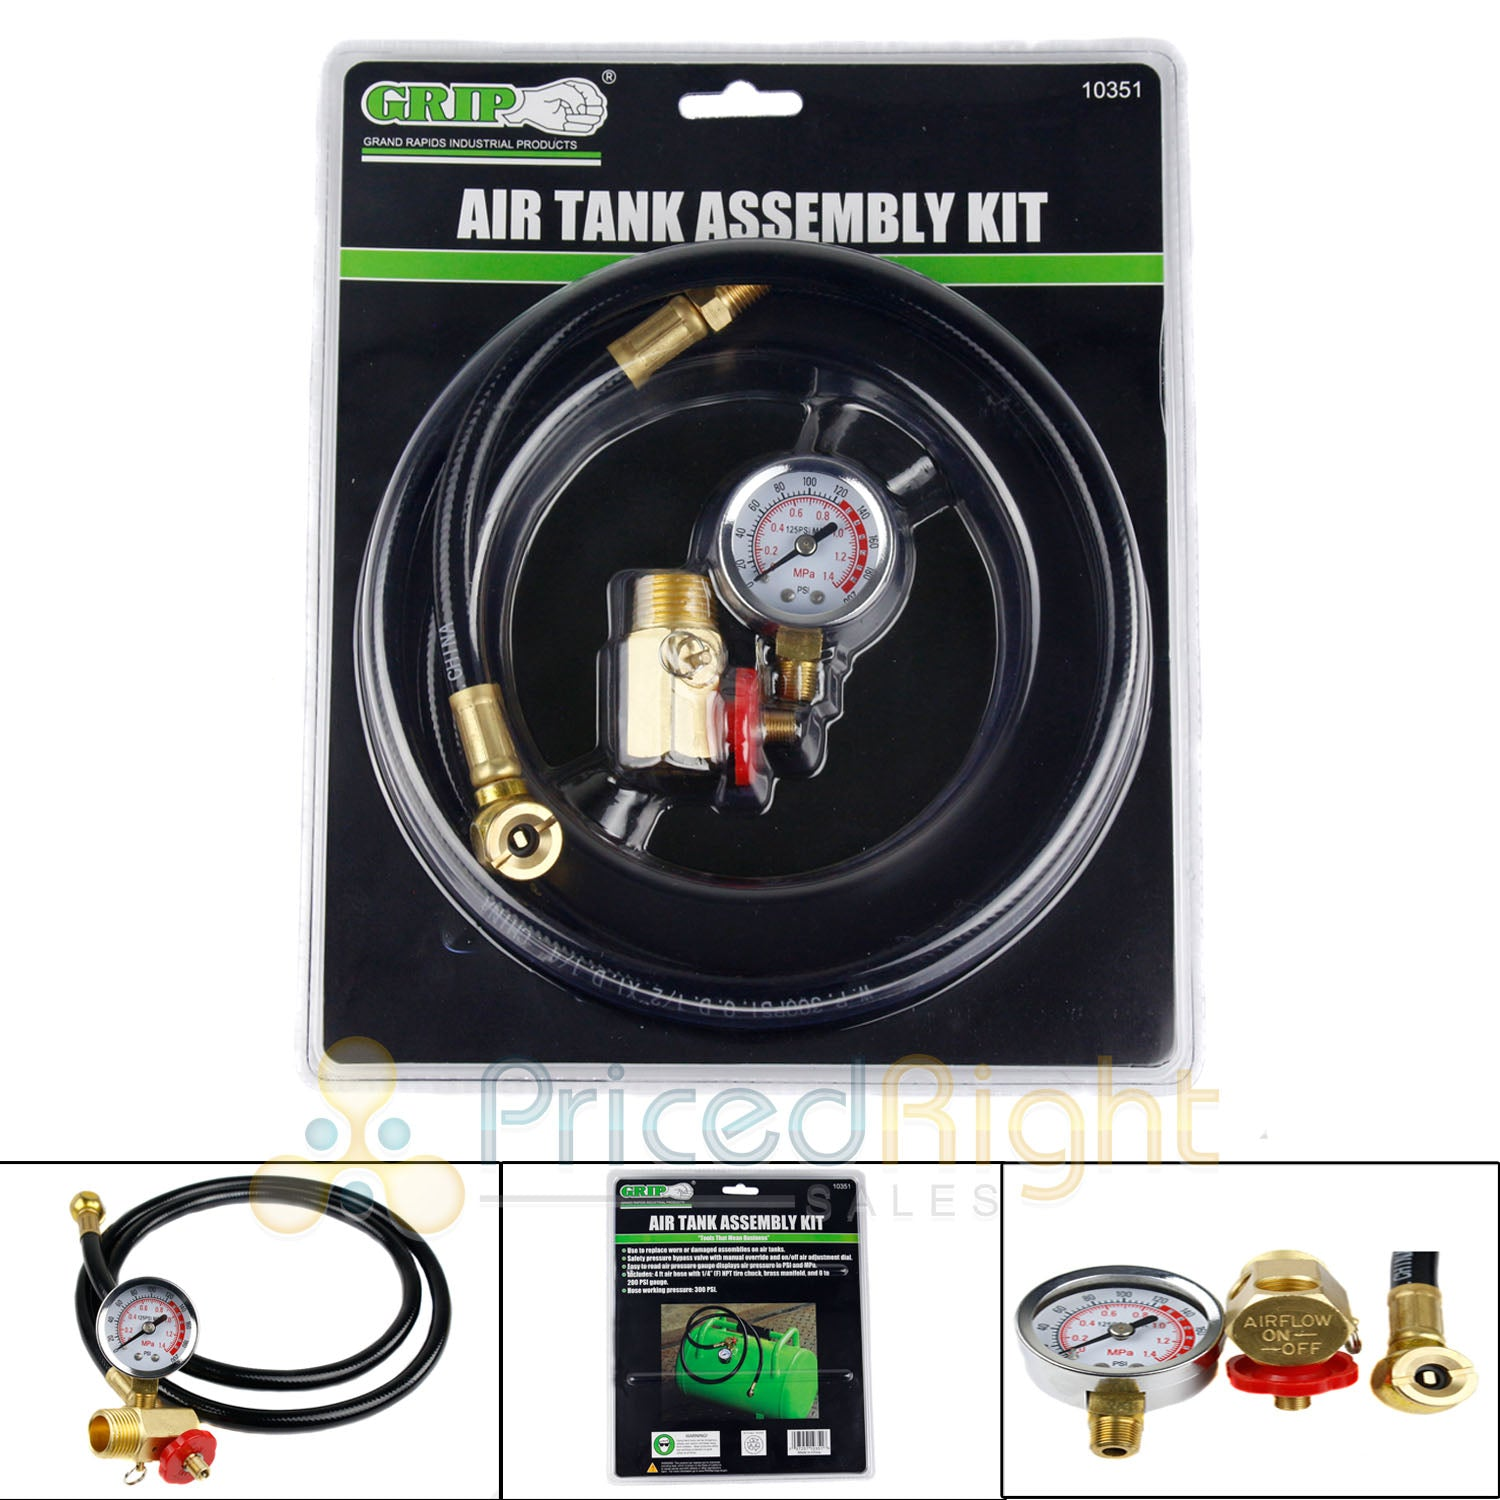 "Air Tank Assembly Kit 4 ft Hose 0-200 PSI Gauge 1/4"" NPT Tire Chuck GRIP 10351"